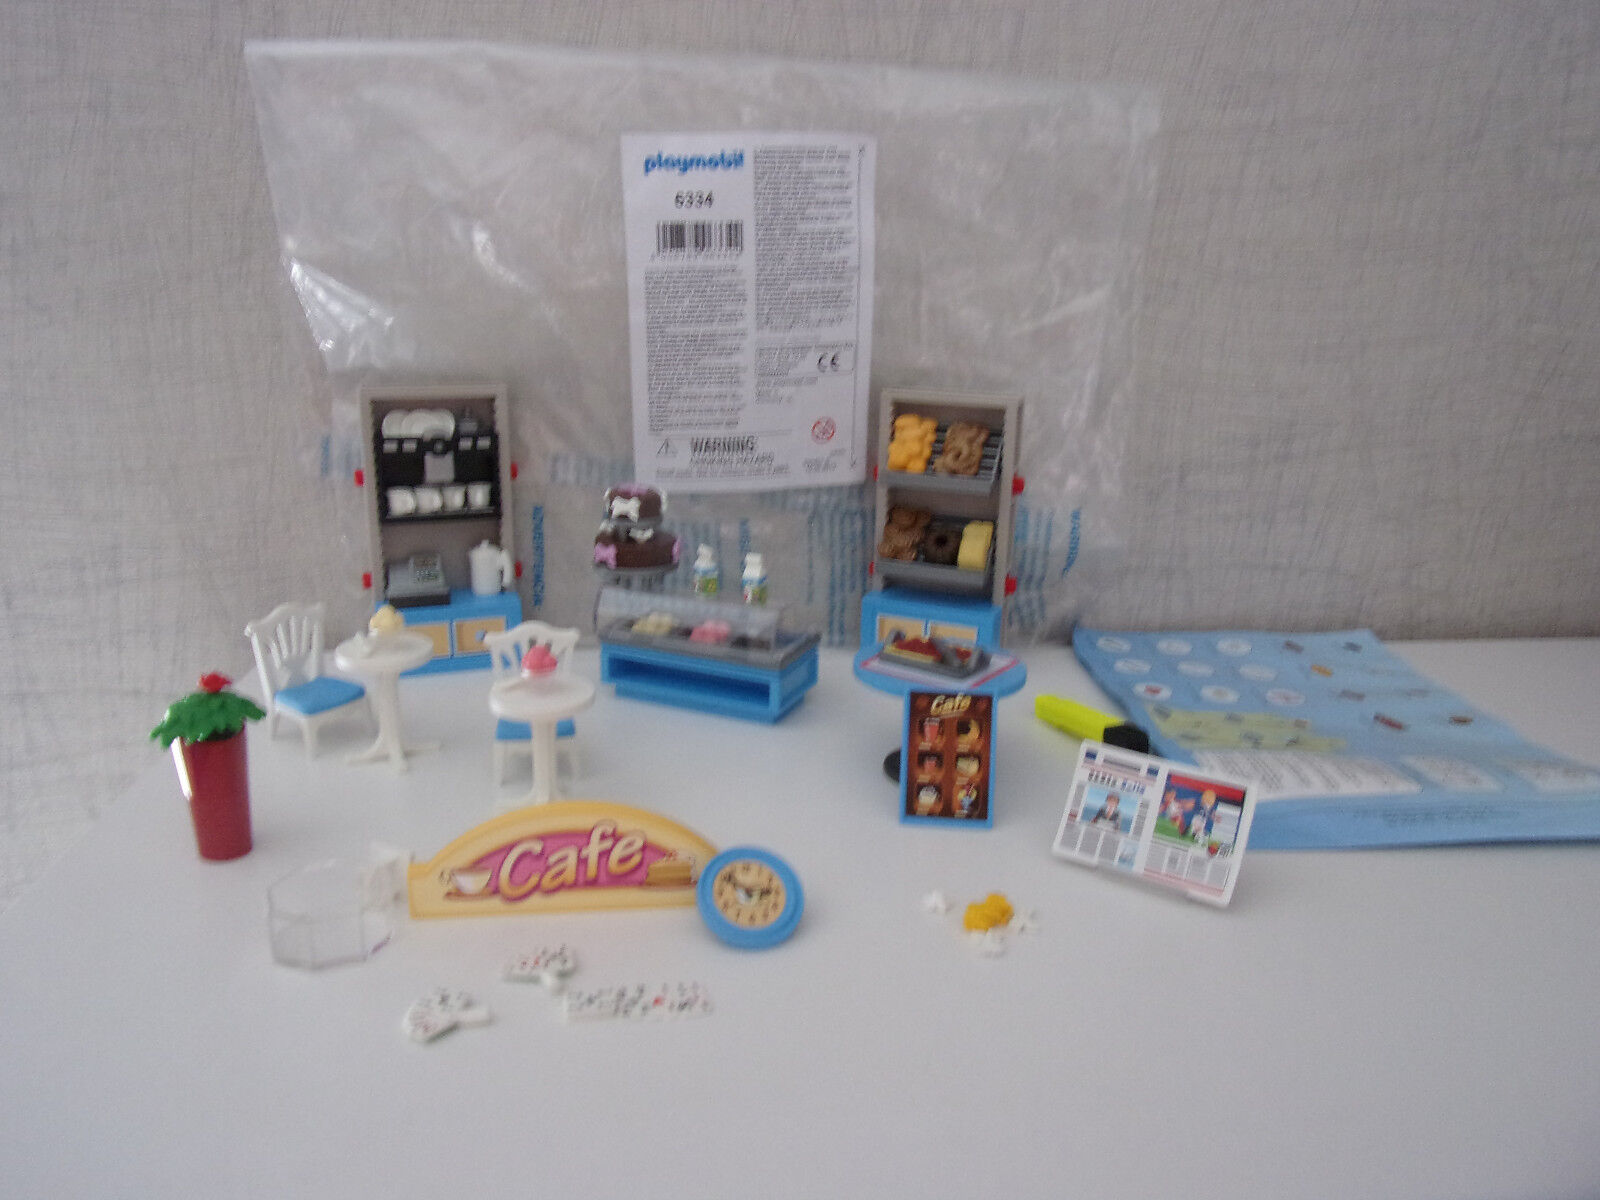 Playmobil Additions & Accessories 6334 Cafe-Einrichtung - New